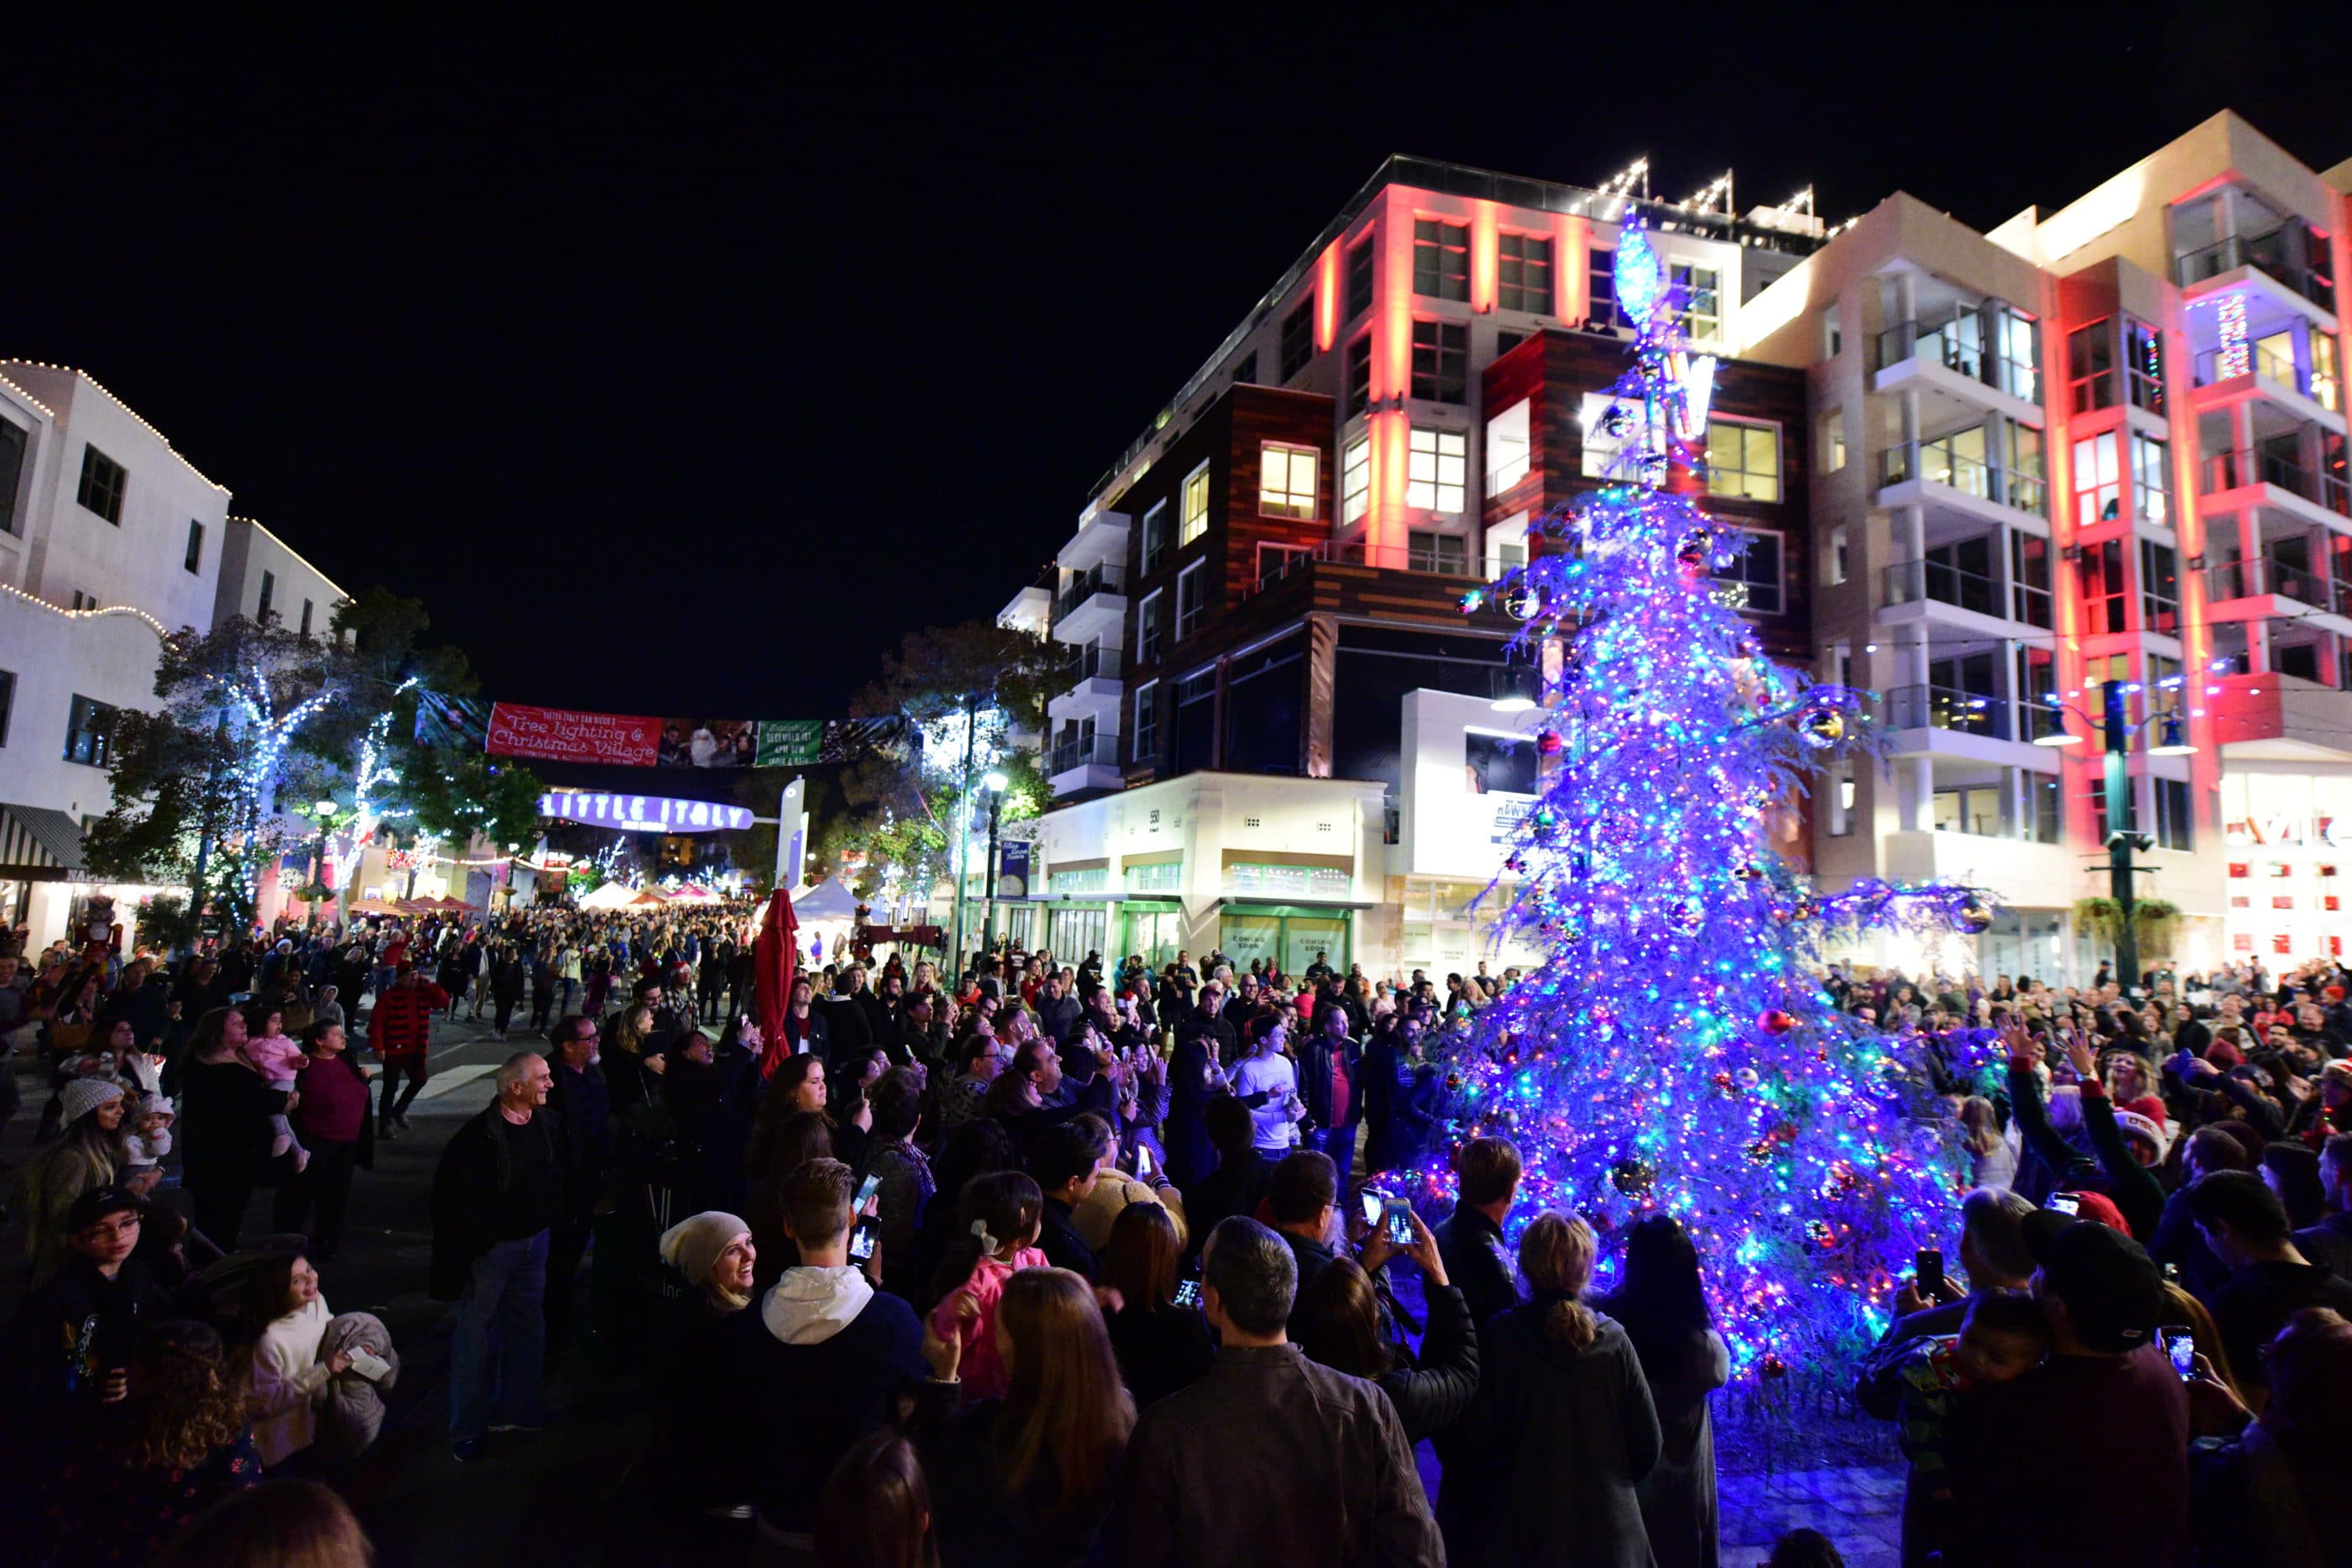 Crowds gather around the Little Italy Christmas tree at night as it's being lit for the first time.